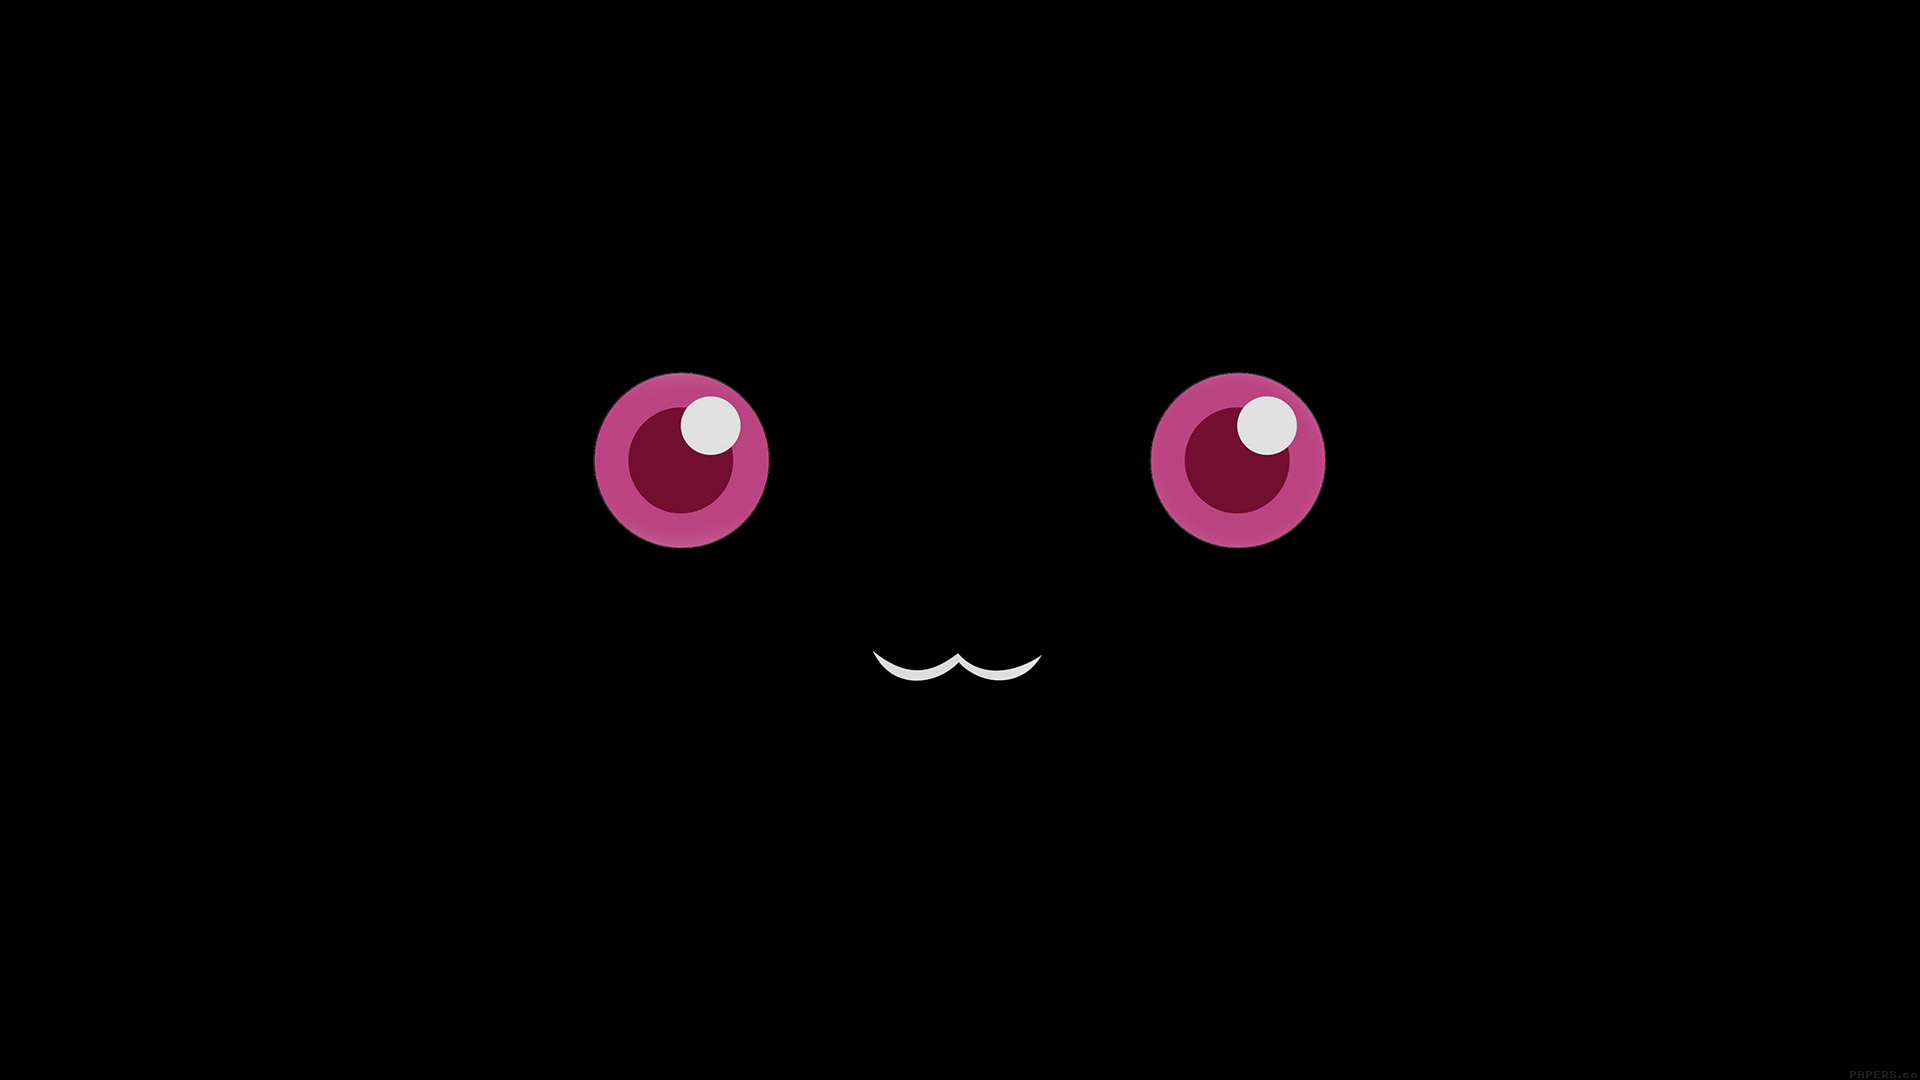 Fall Wallpapers In Pink Color Ag59 Cute Pokemon Dark Character Anime Minimal Wallpaper